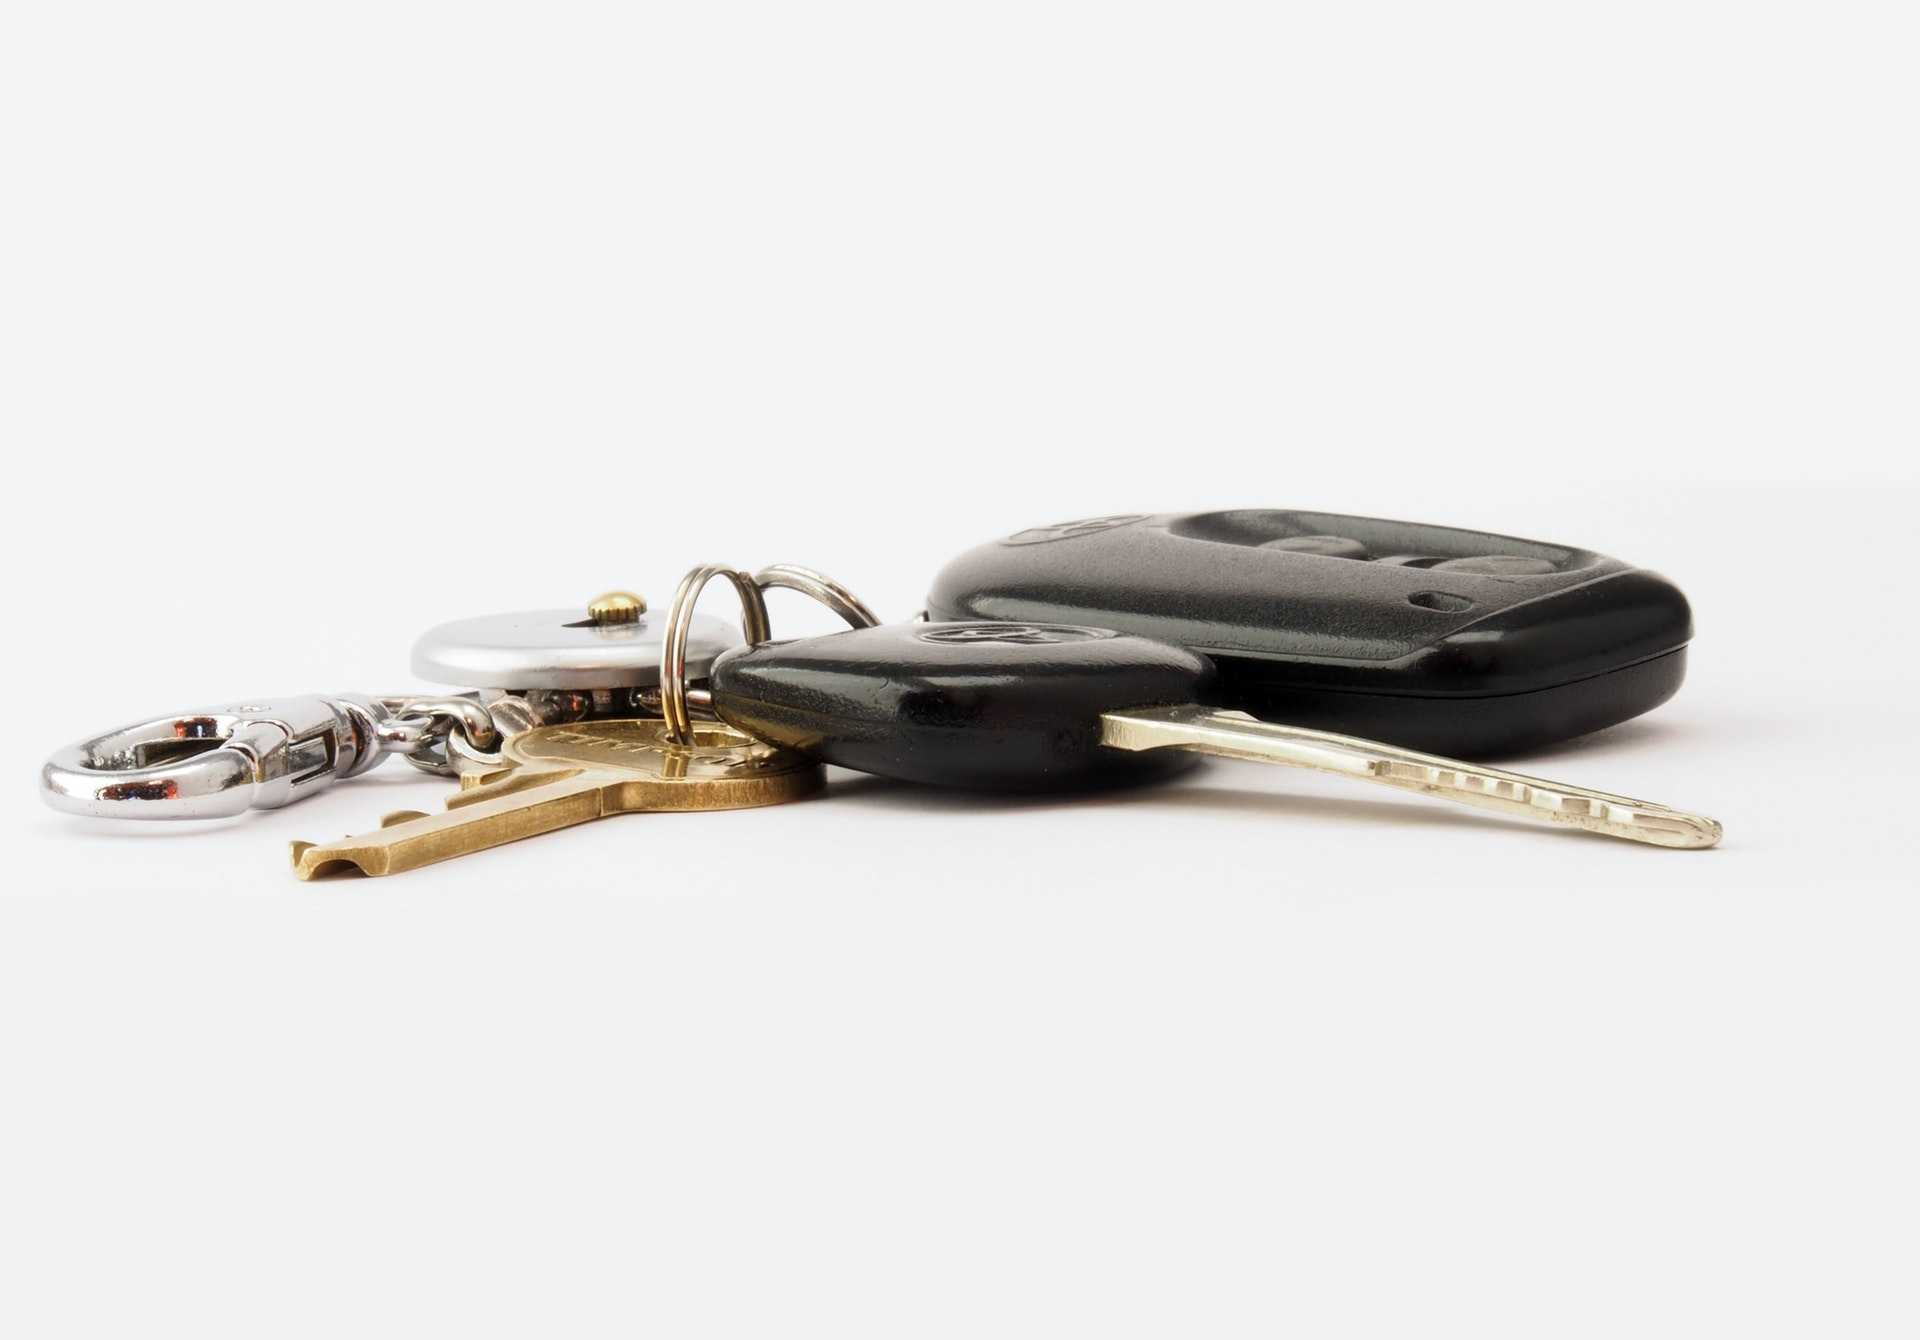 Keys to your first car